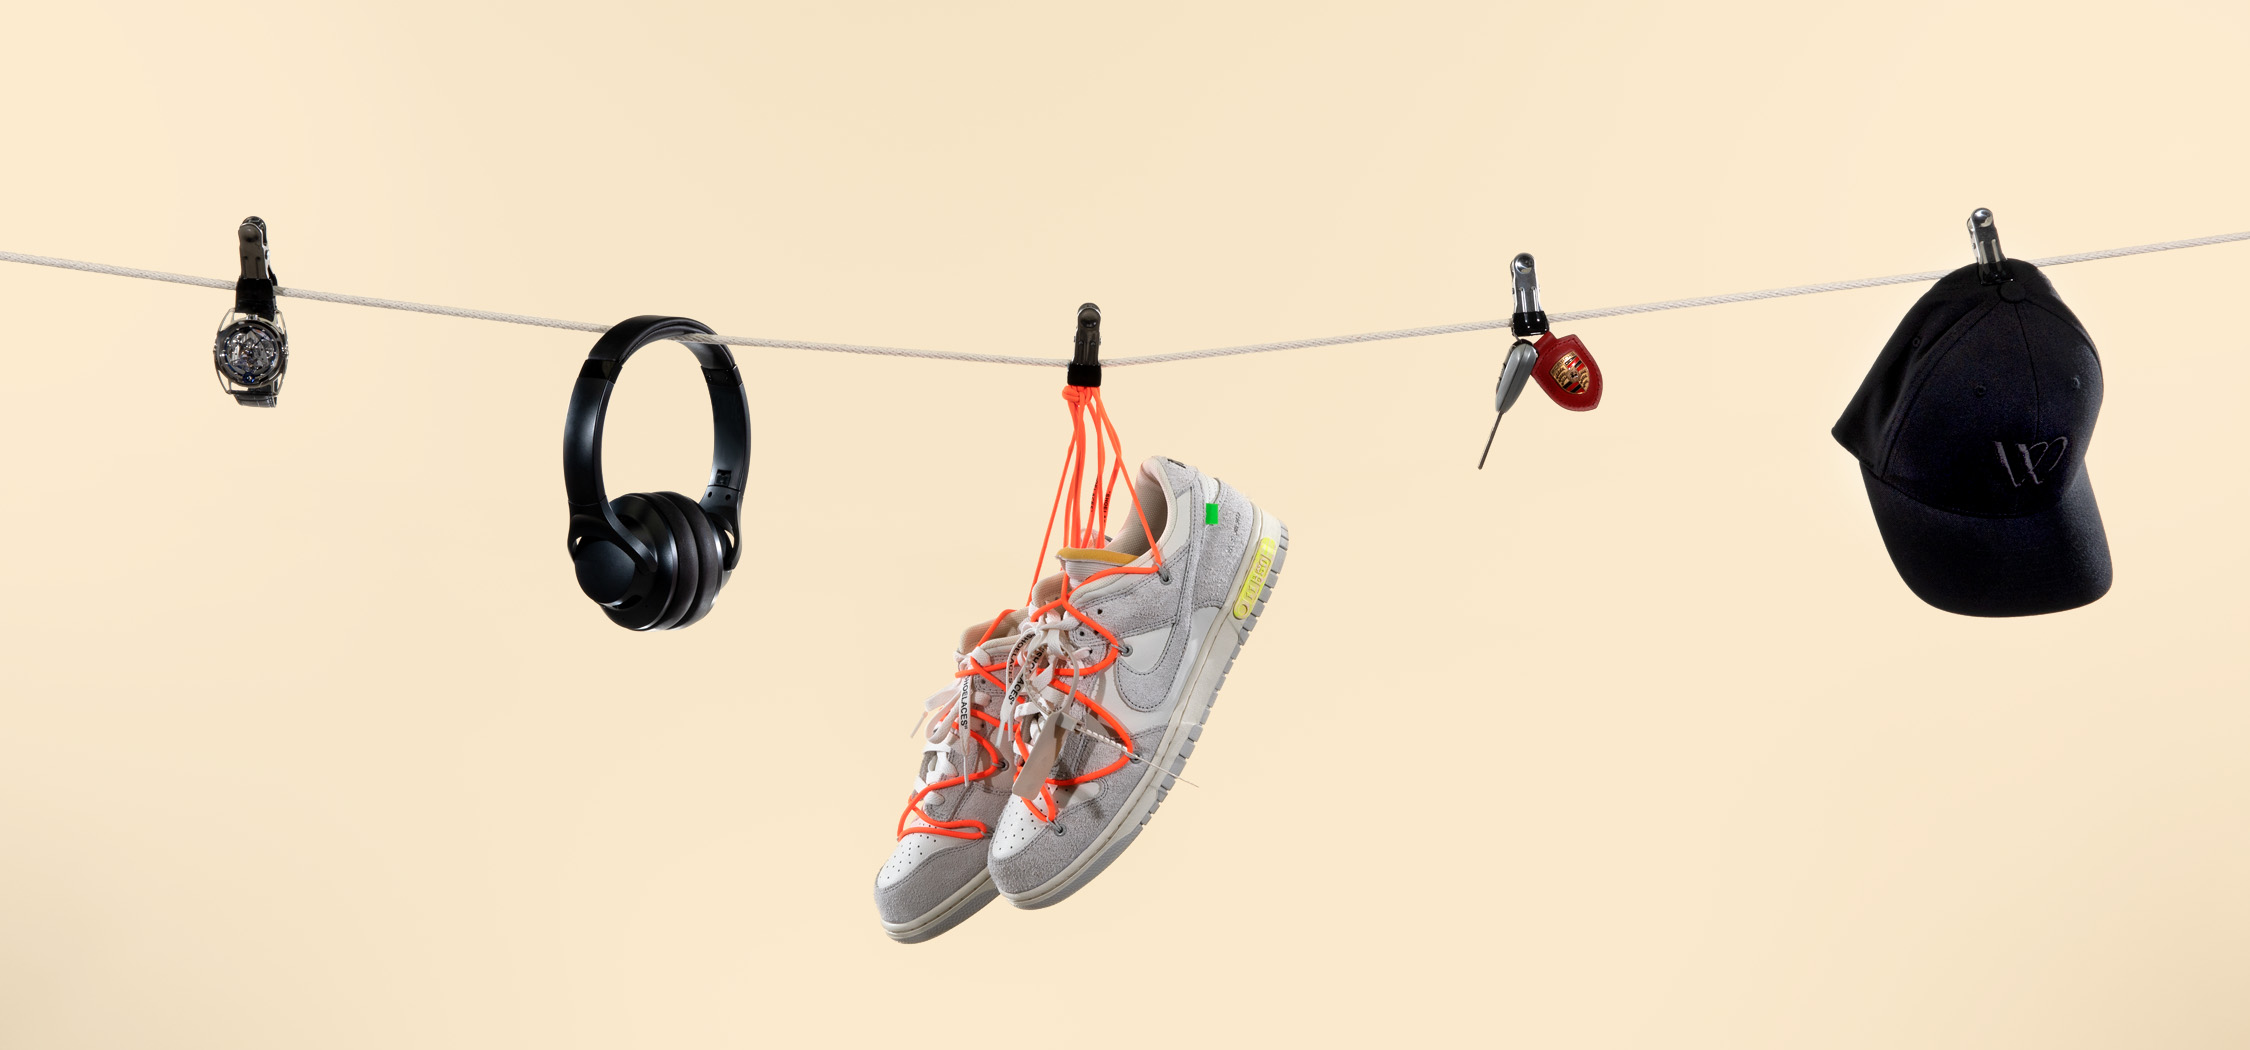 Watch, headphones, sneakers, car keys, and WatchBox hat hanging from a clothesline